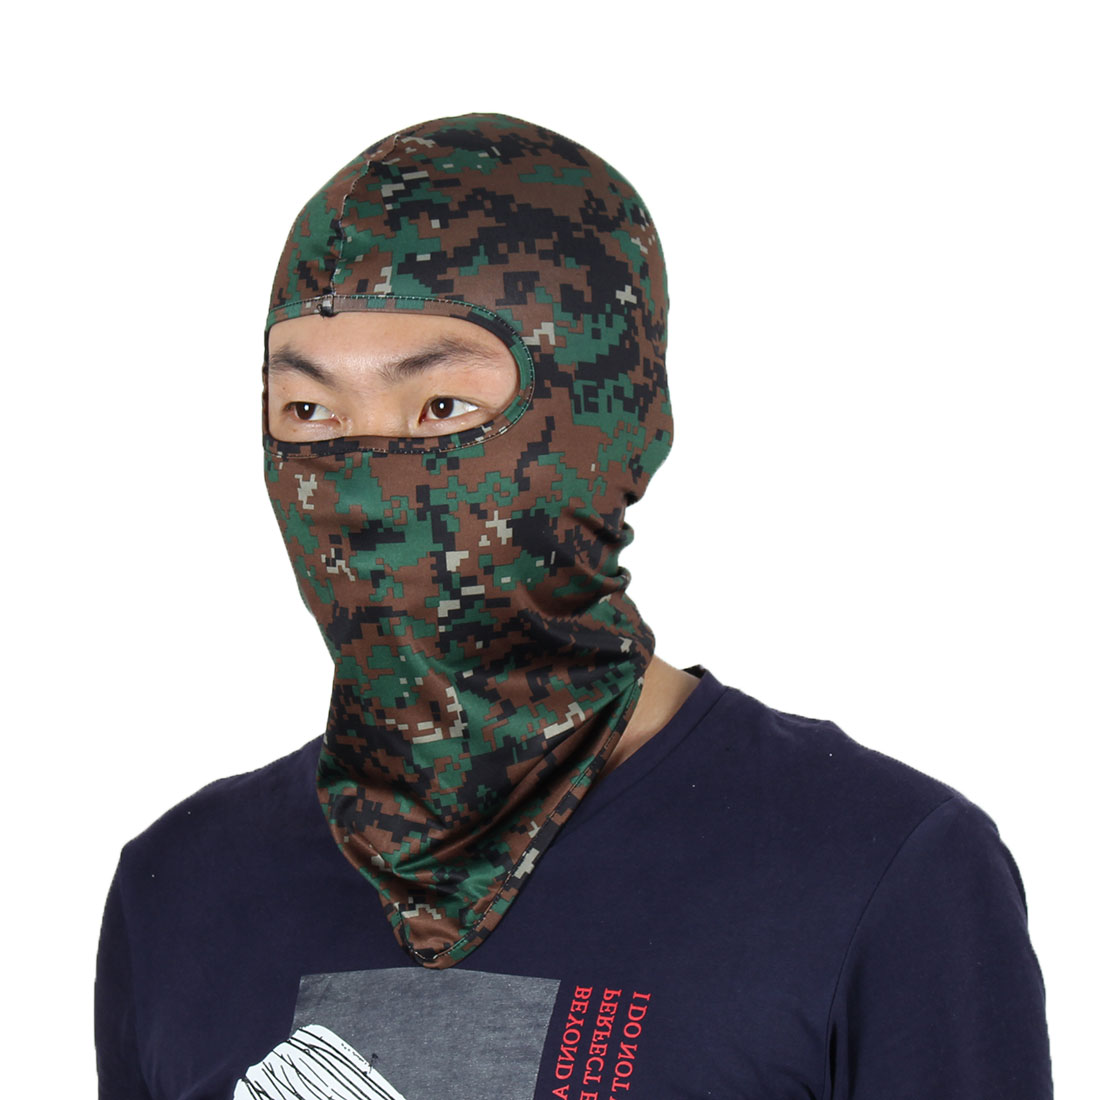 Full Coverage Face Mask Gel Padded Neck Protector Beanie Hood Helmet Balaclava by Unique-Bargains